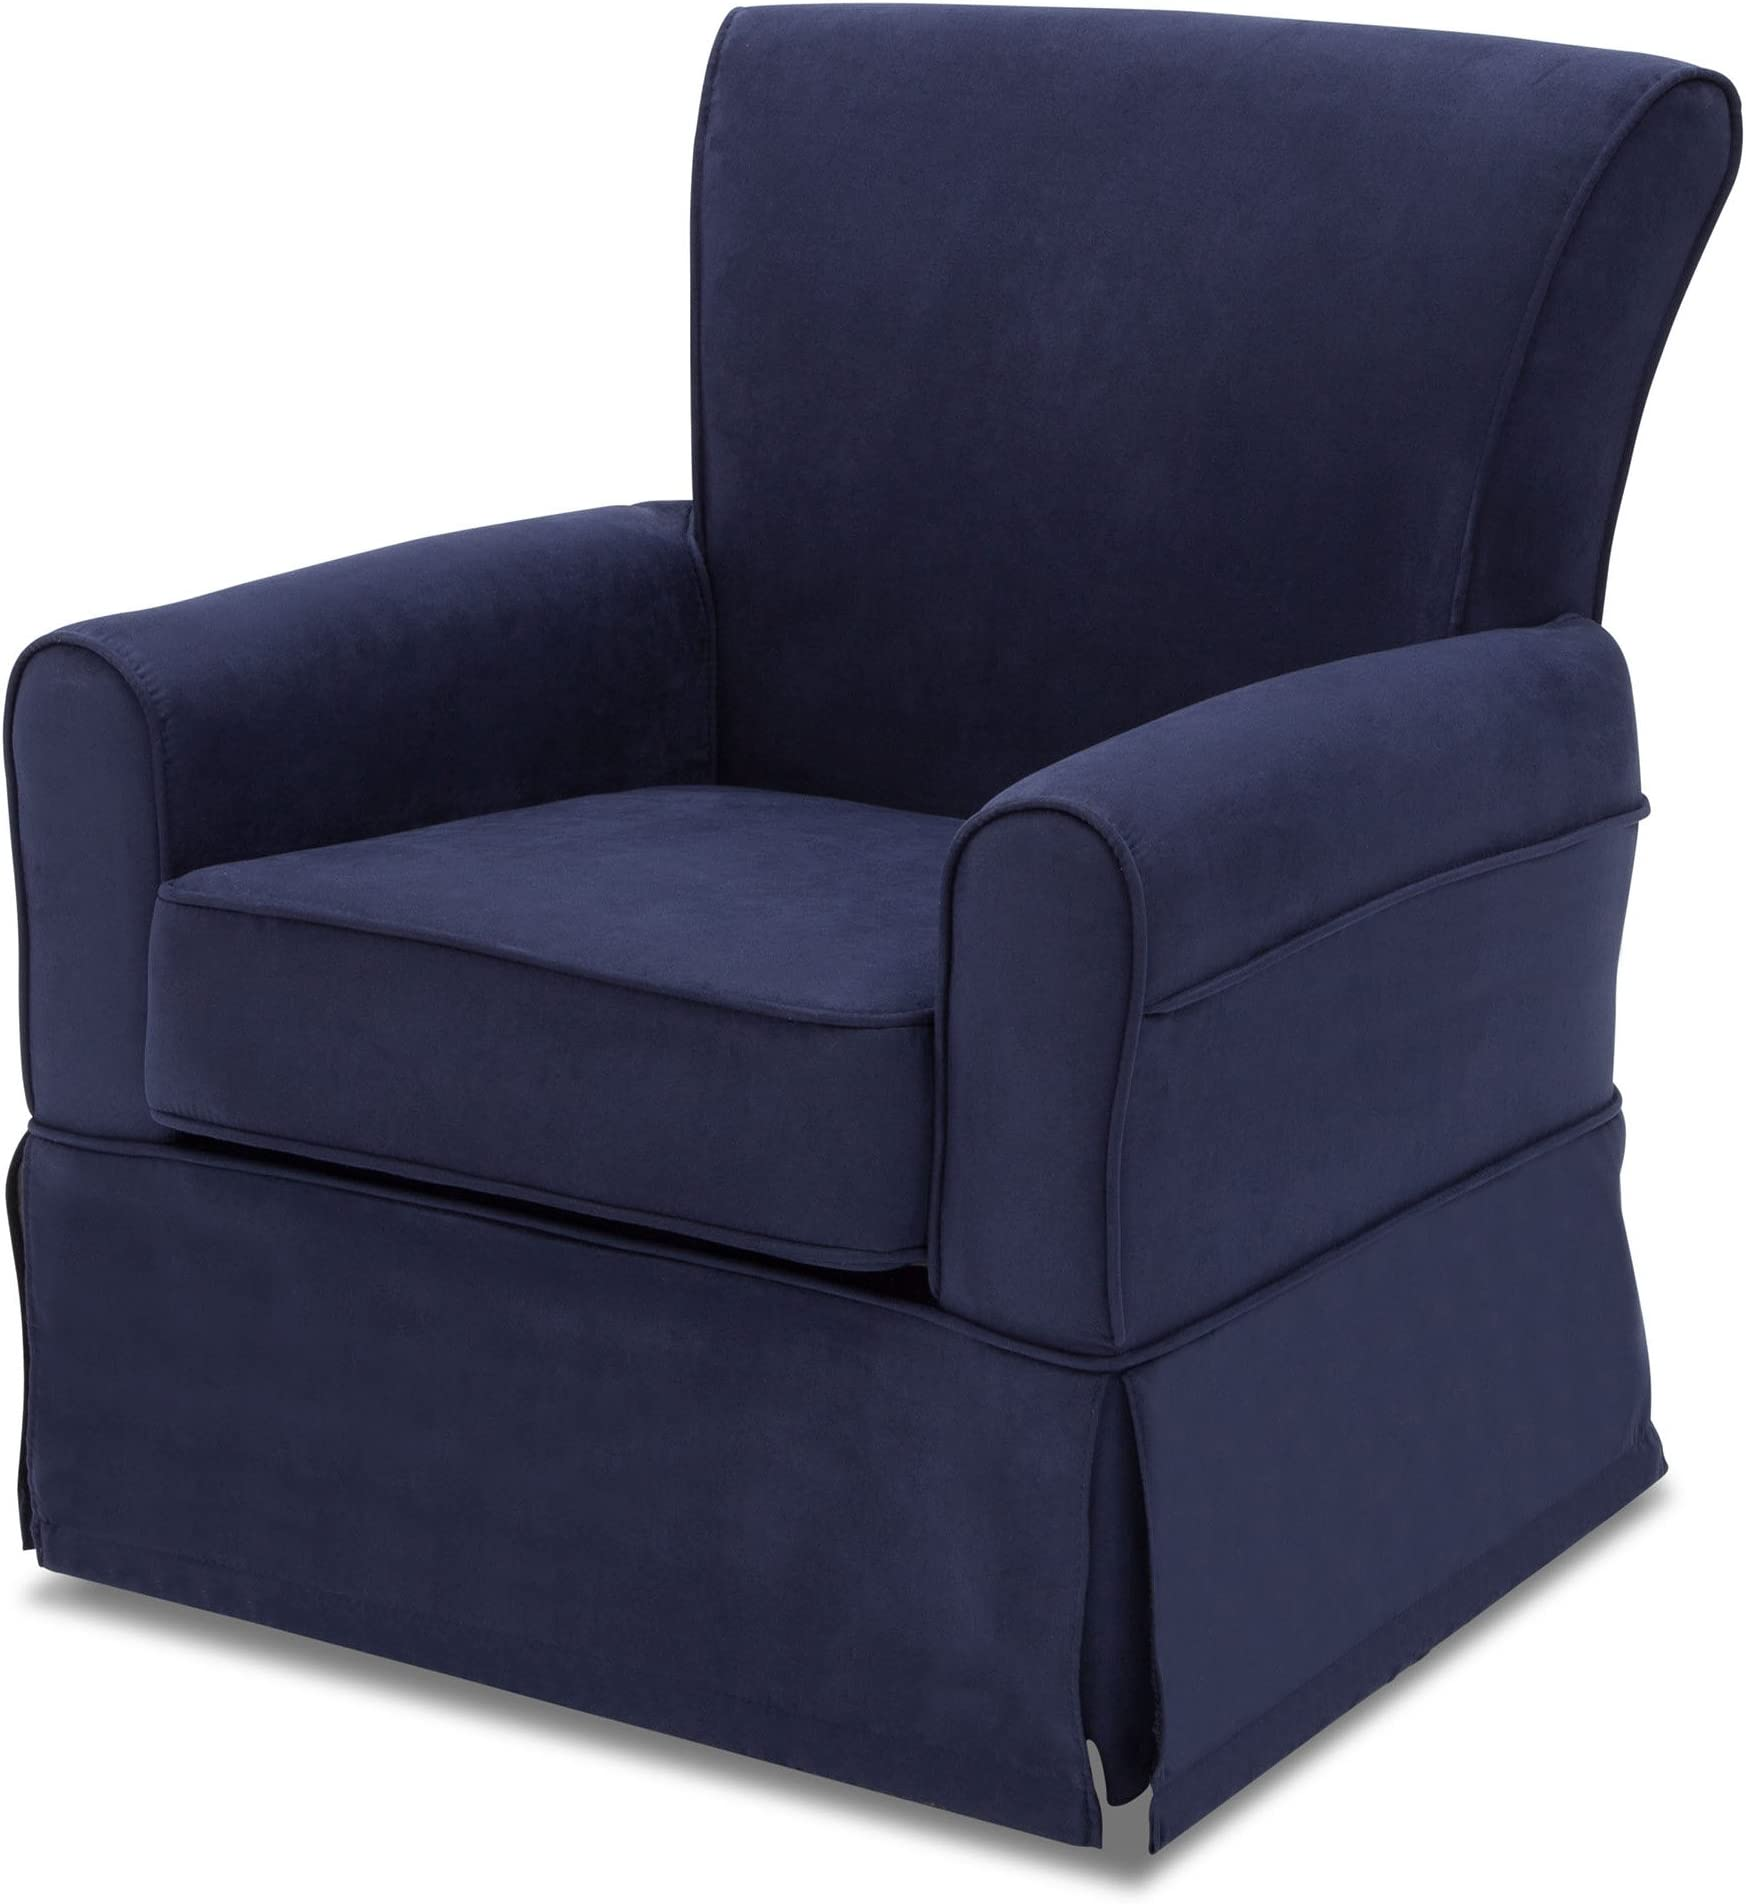 Delta Children Benbridge Glider Swivel Rocker Chair Navy  sc 1 st  Amazon.com & Gliders | Amazon.com